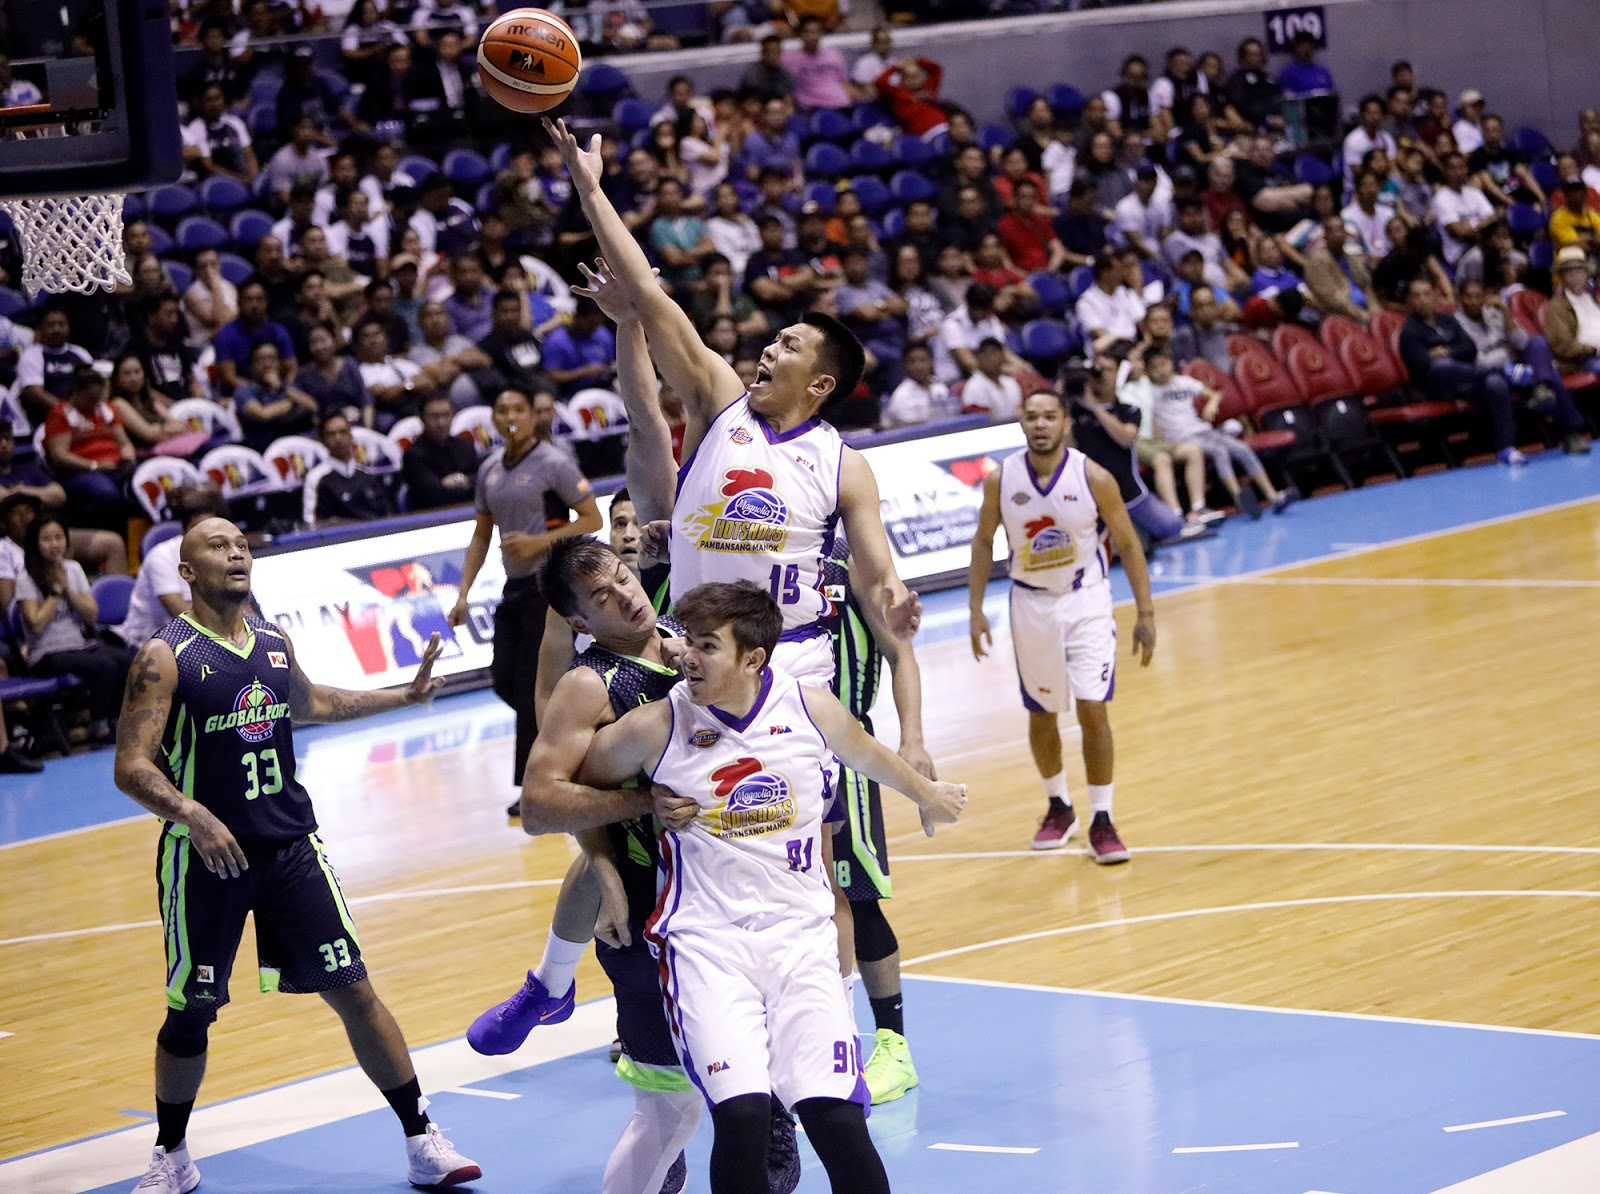 Magnolia snaps skid with rout of GlobalPort